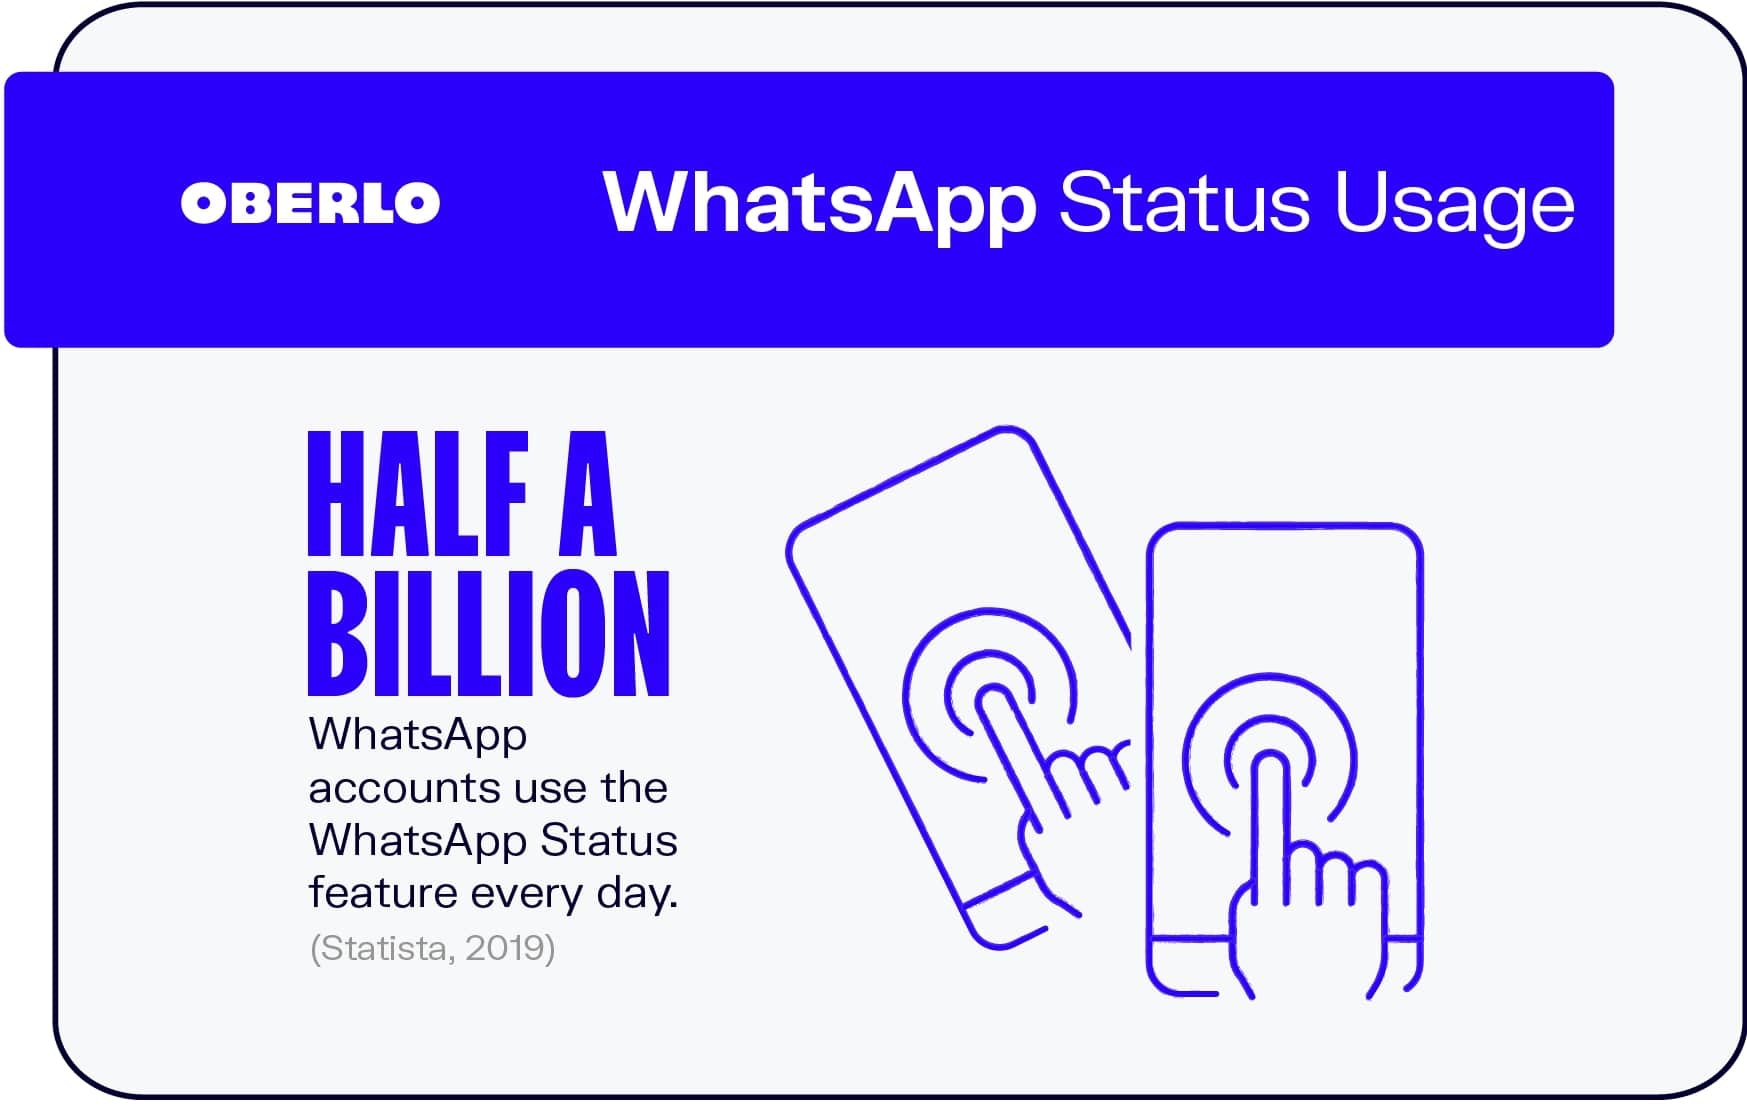 WhatsApp Status Usage